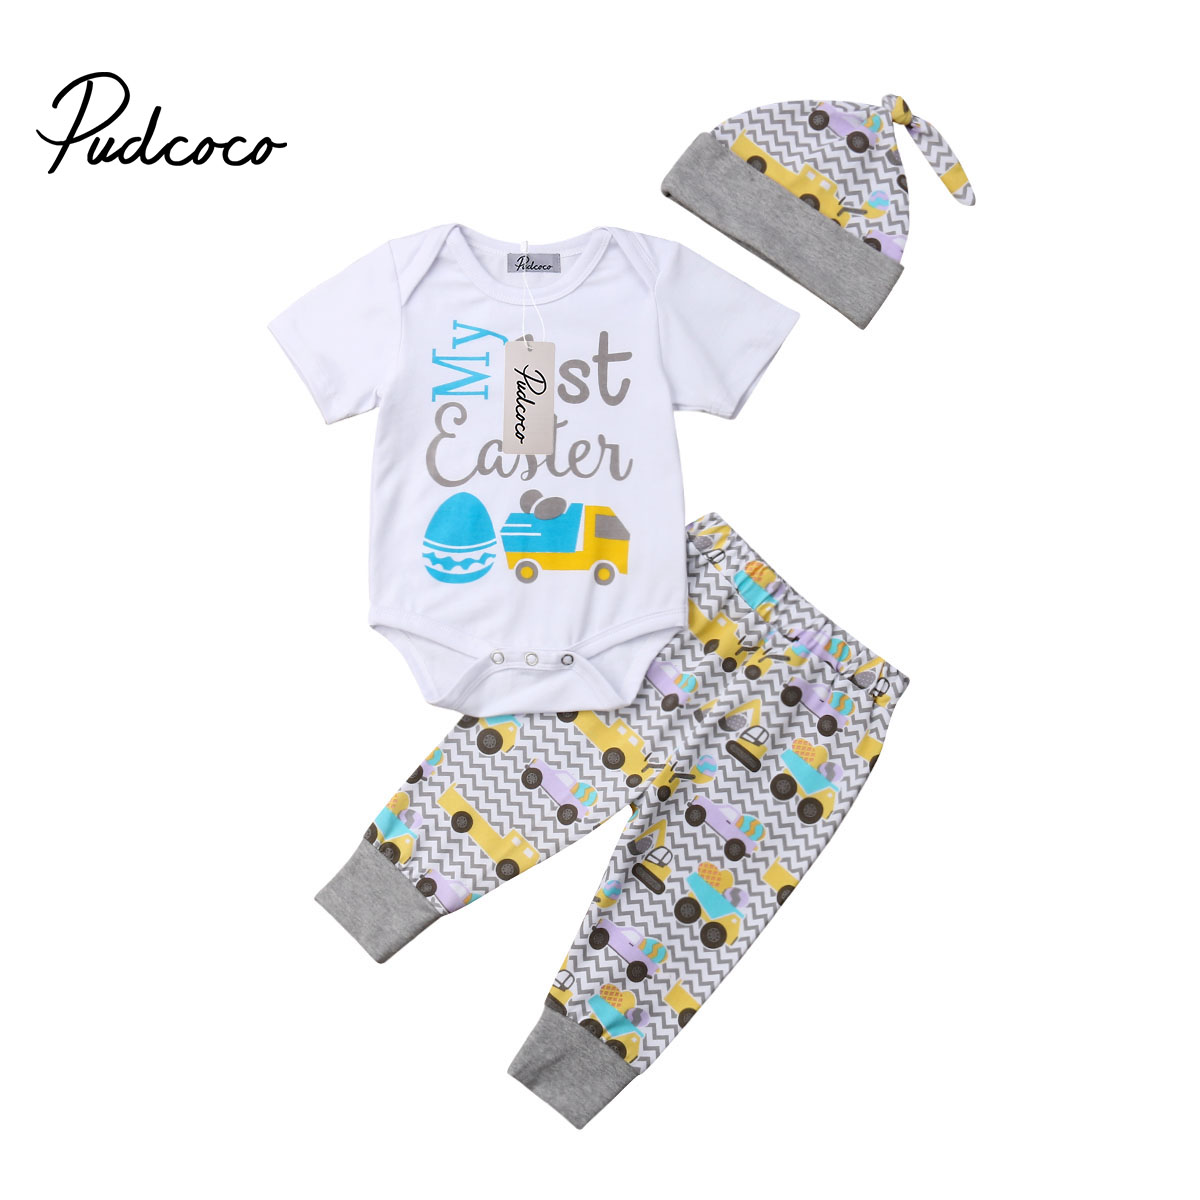 pudcoco Casual <font><b>Clothing</b></font> Set Cotton 2Pcs <font><b>Baby</b></font> Toddler Boys Girls <font><b>Unisex</b></font> Kid 1st Easter Romper+Pant+Hat 2019 Print Clothes Outfits image